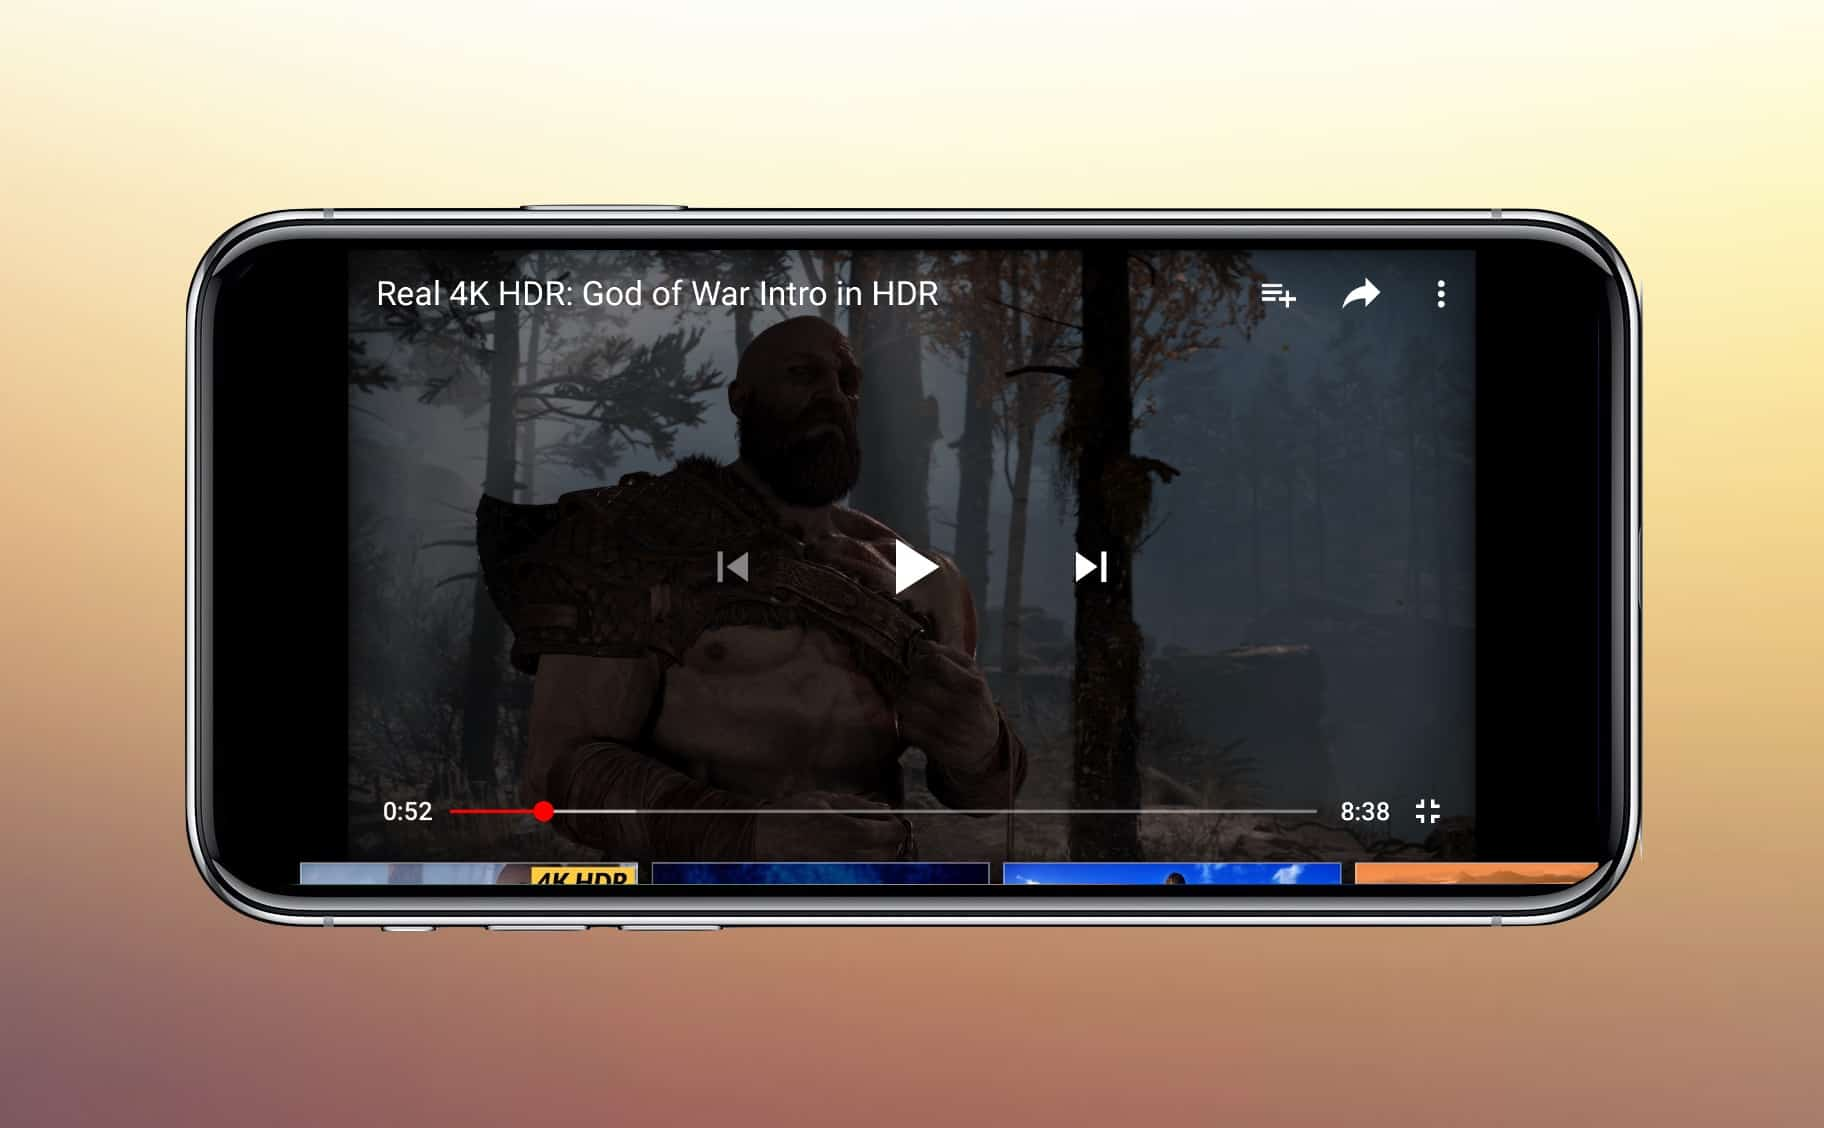 Displaying an HDR YouTube video on a non-HDR screen is impossible.